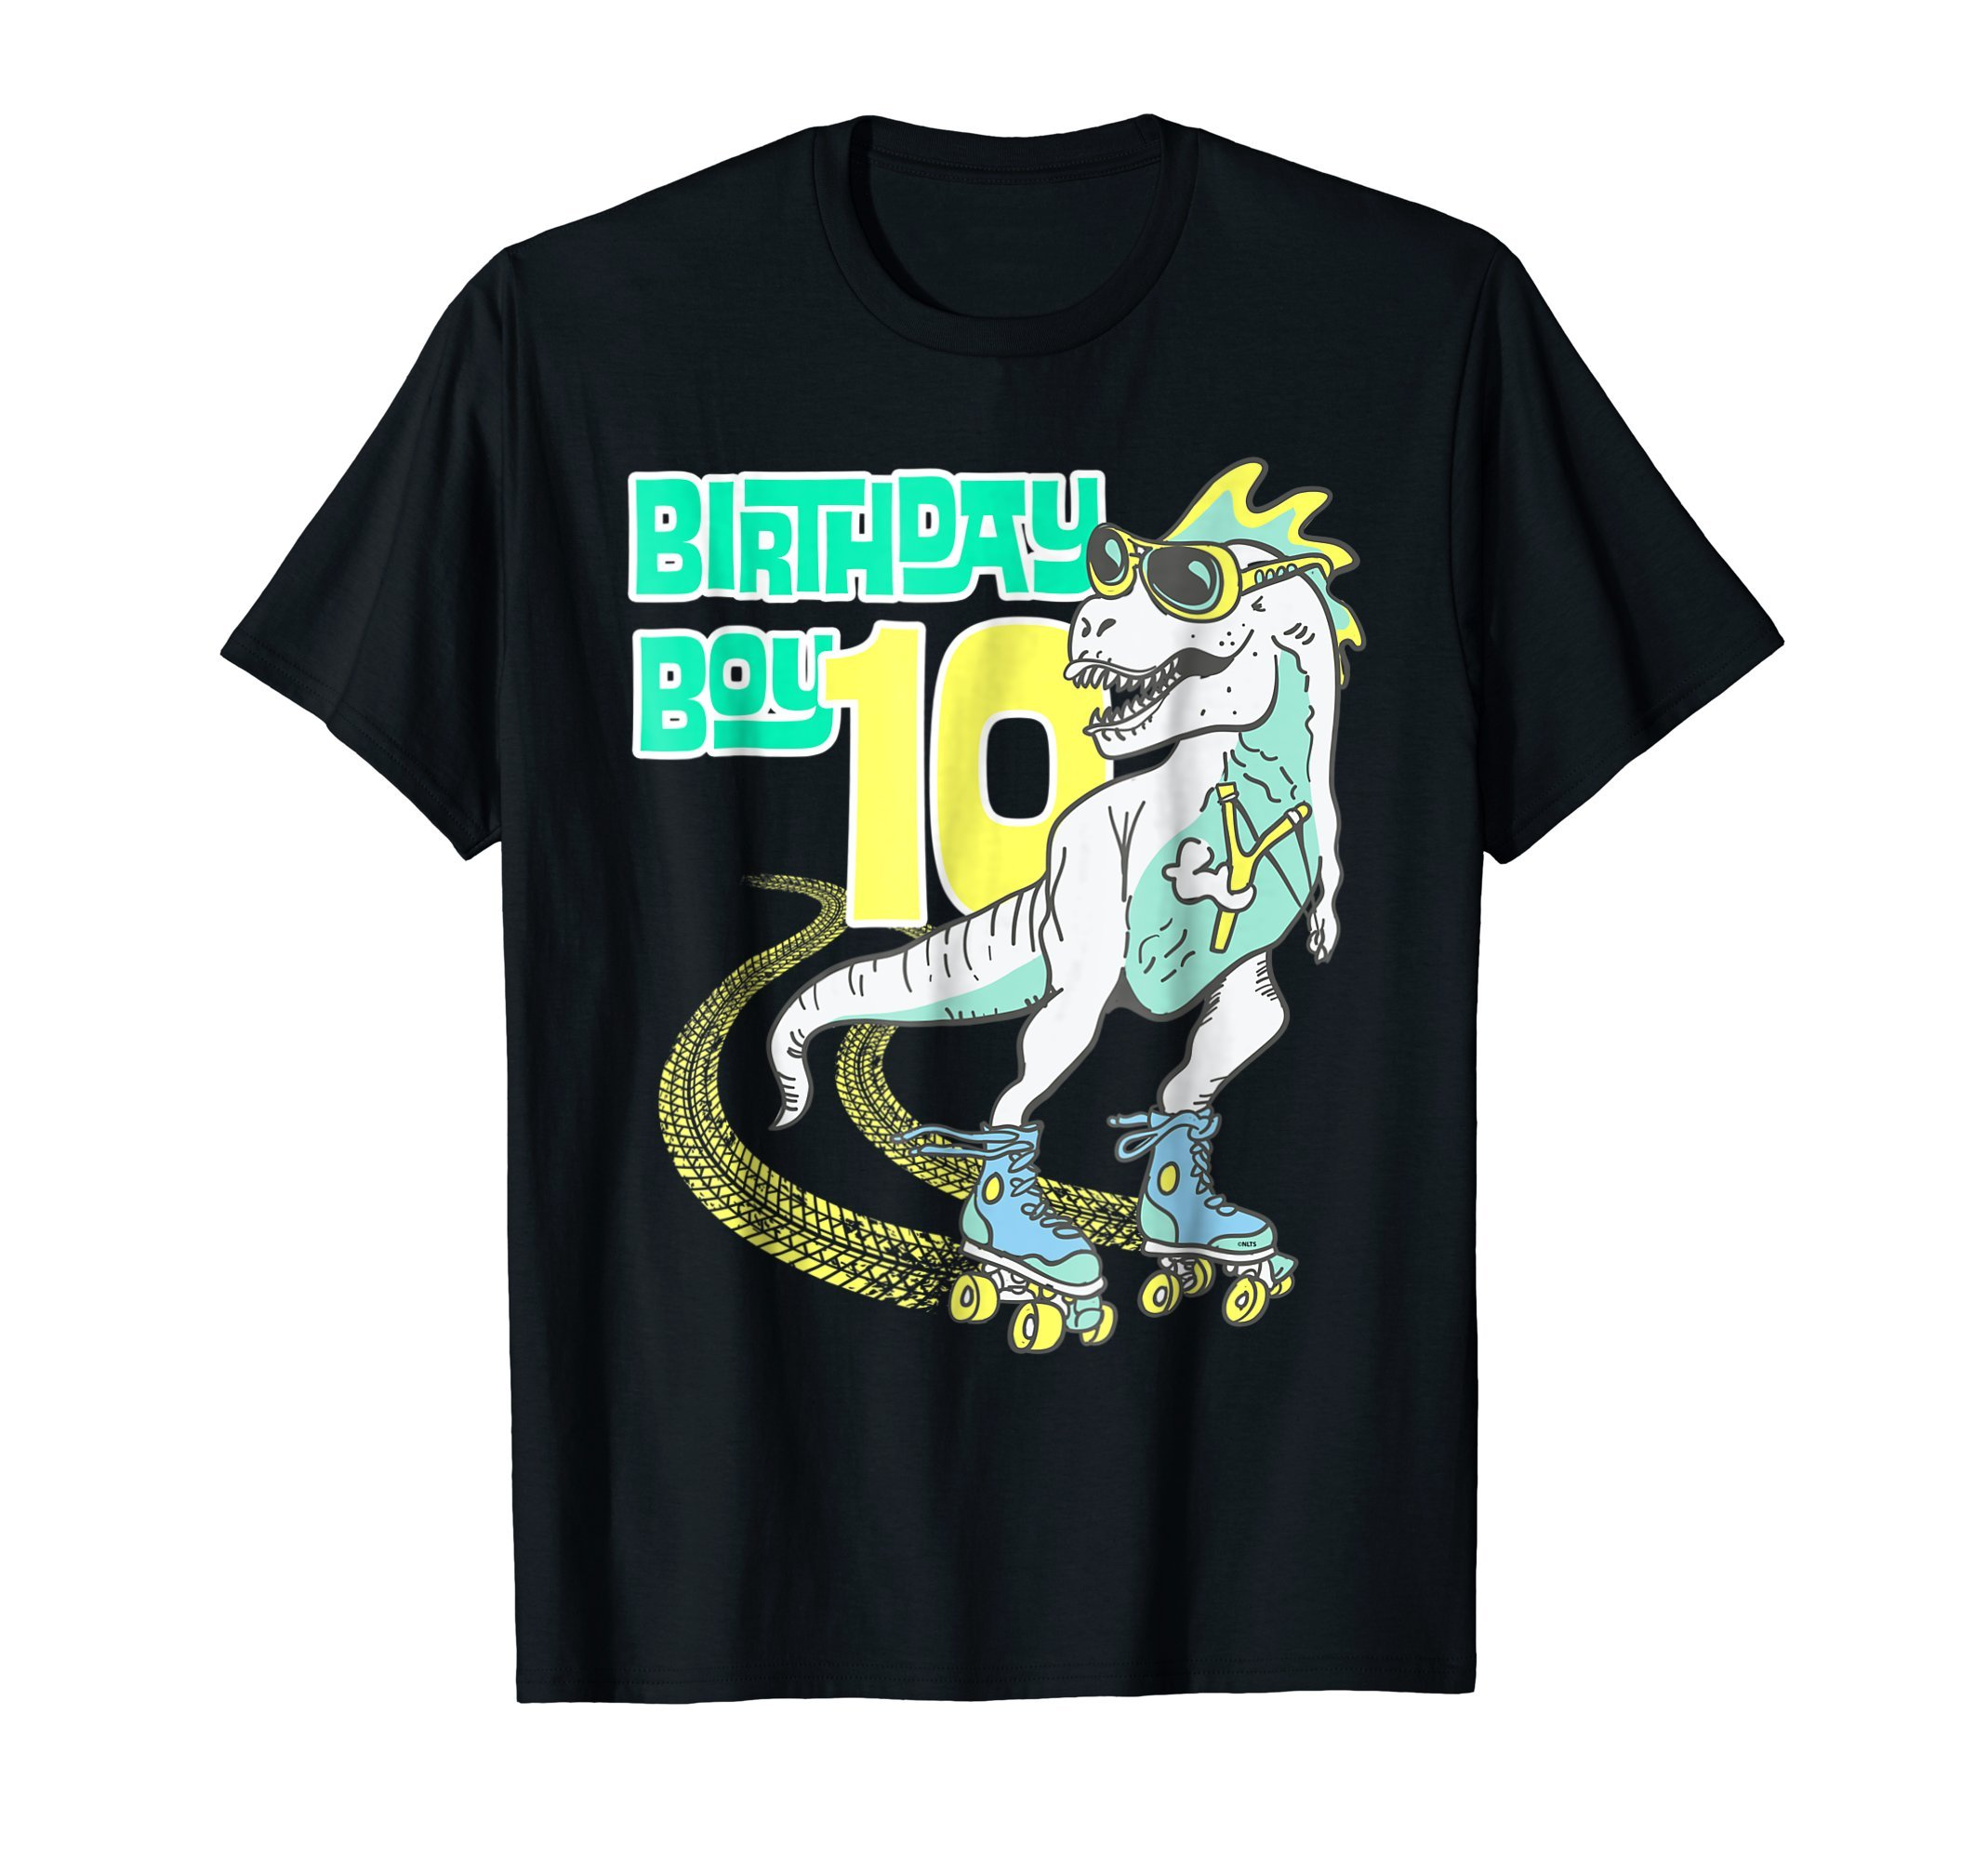 Dinosaur-Skater-Birthday-Boy-10th-Birthday-Fun-Humor-T-Shirt